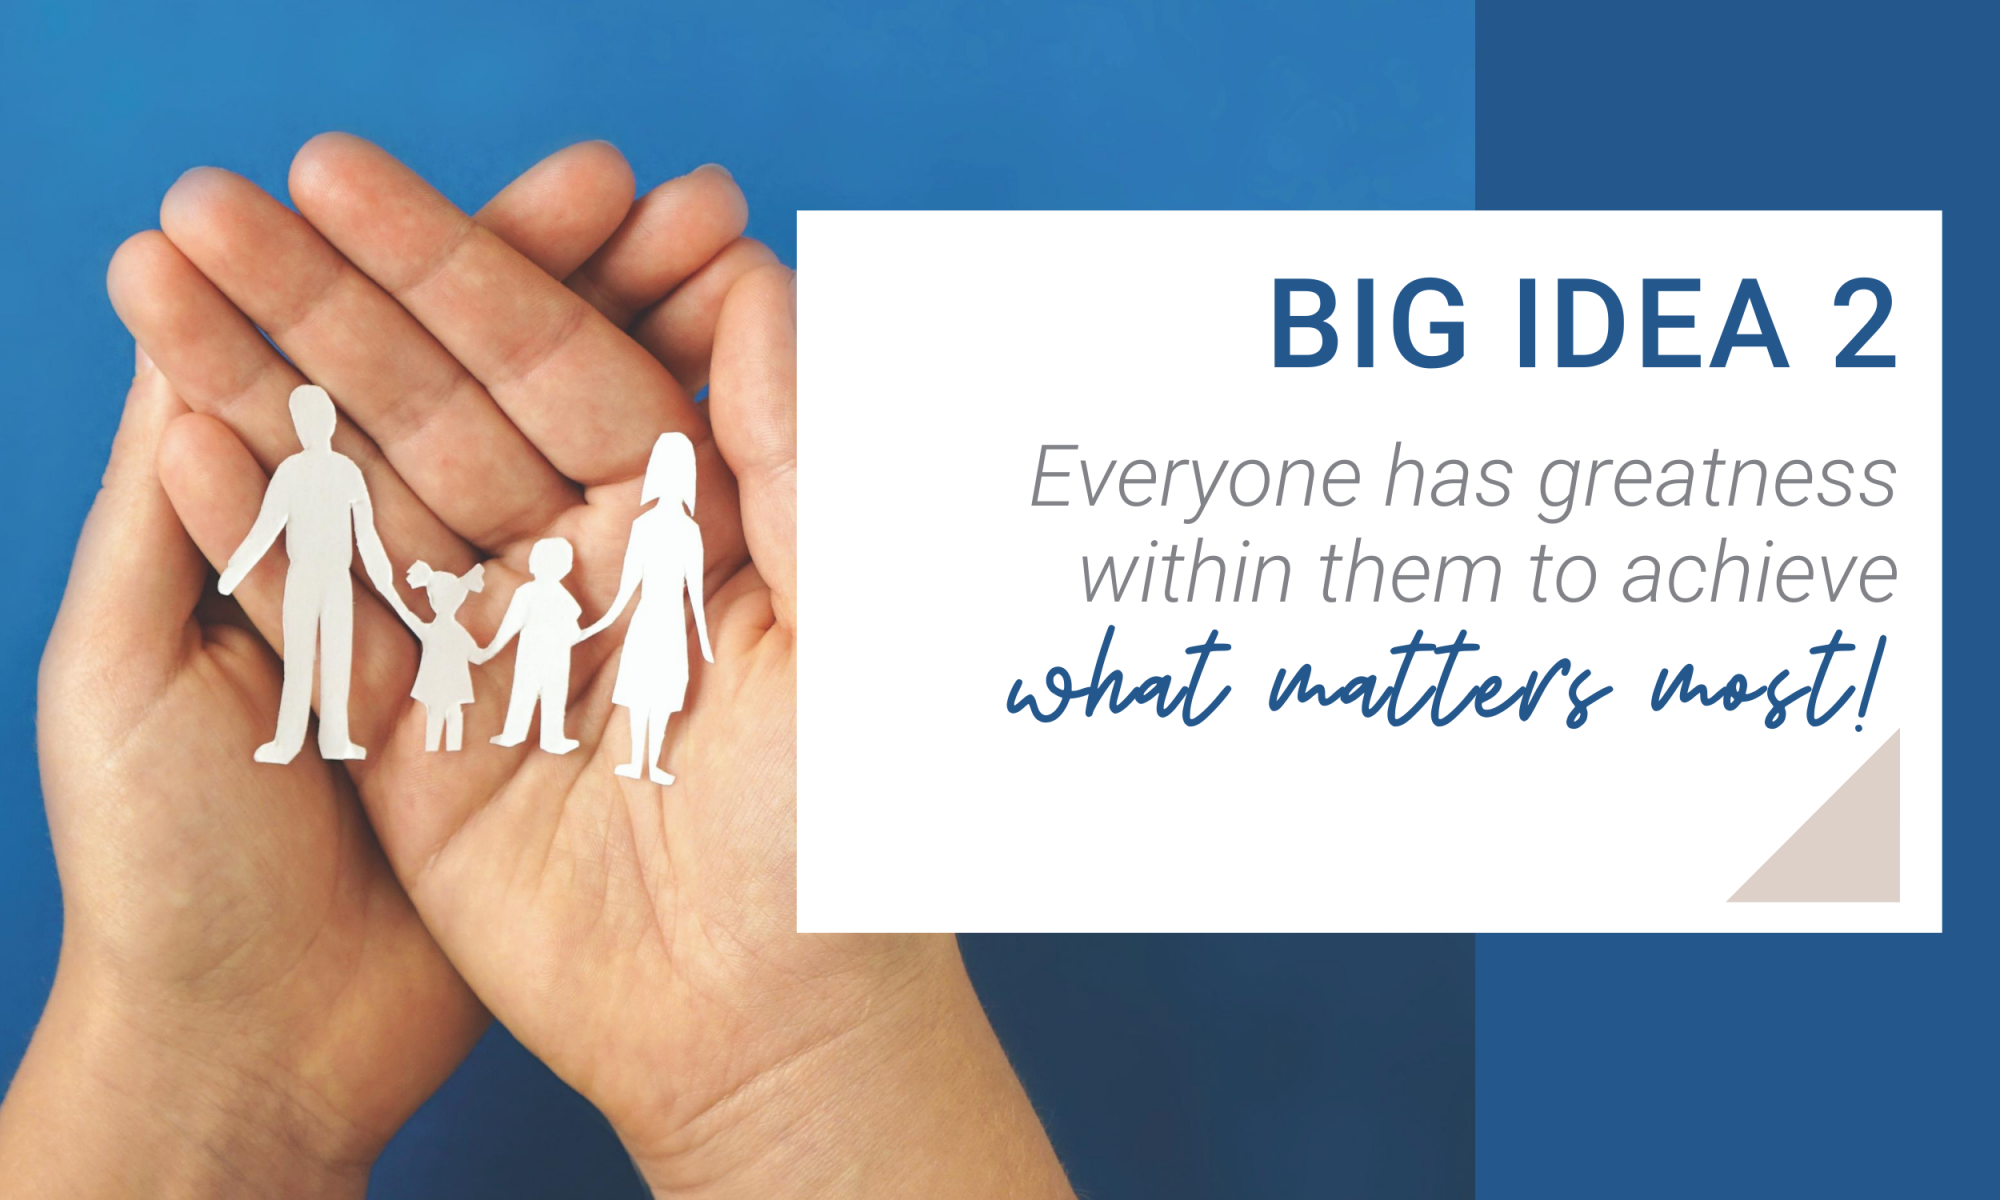 Big Idea 2. Everyone has greatness within them to achieve what matters most